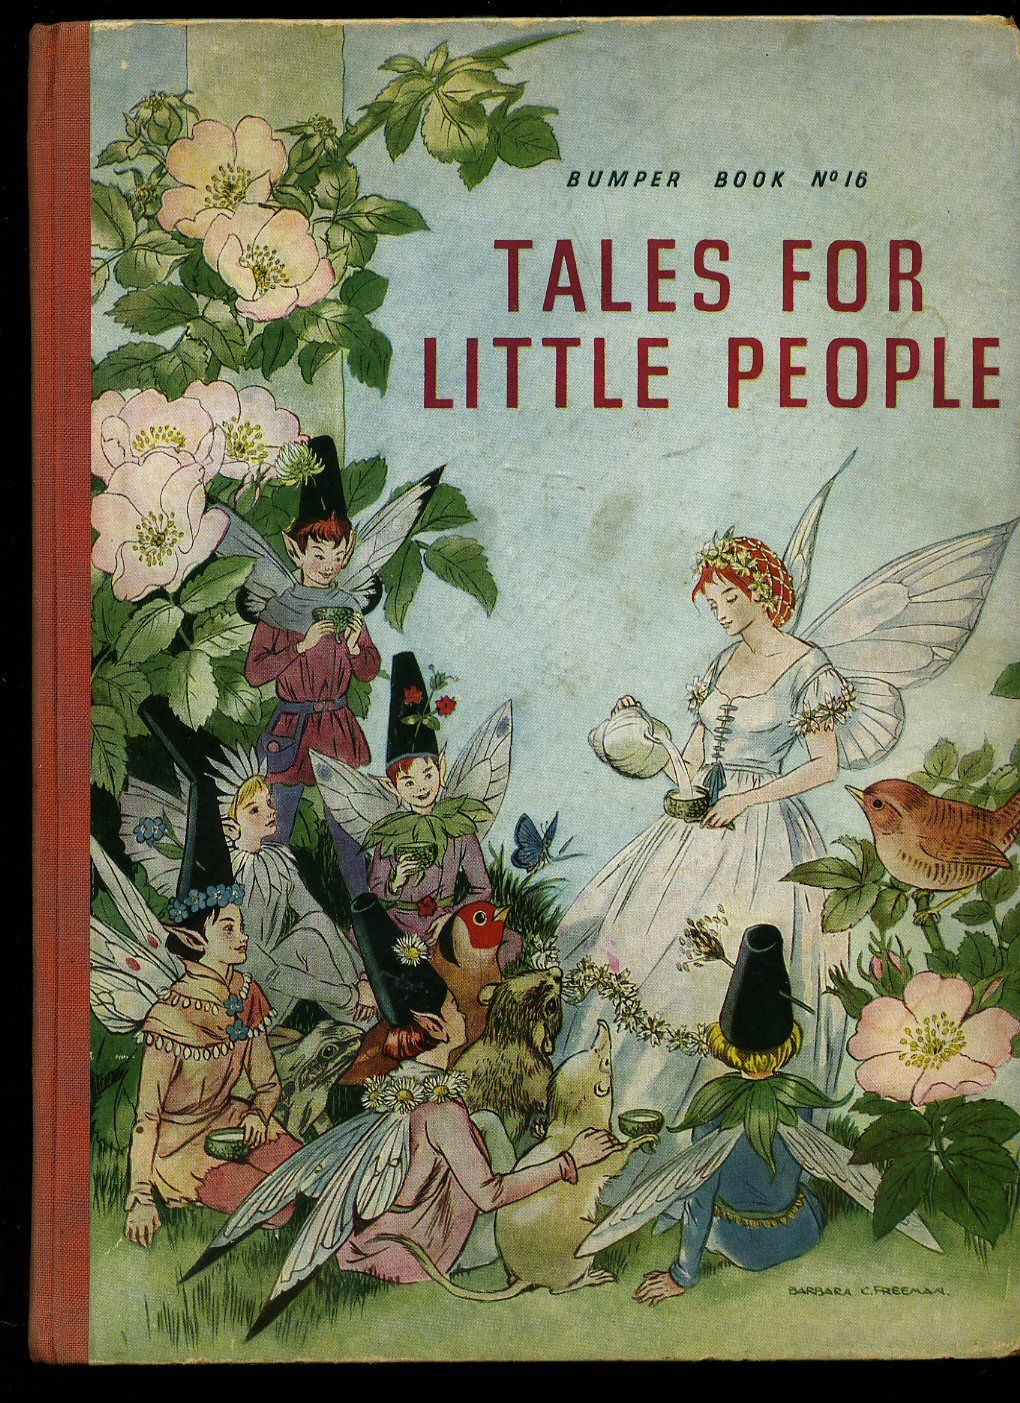 Tales For Little People 1947 Book Cover Art Old Children S Books Vintage Book Covers